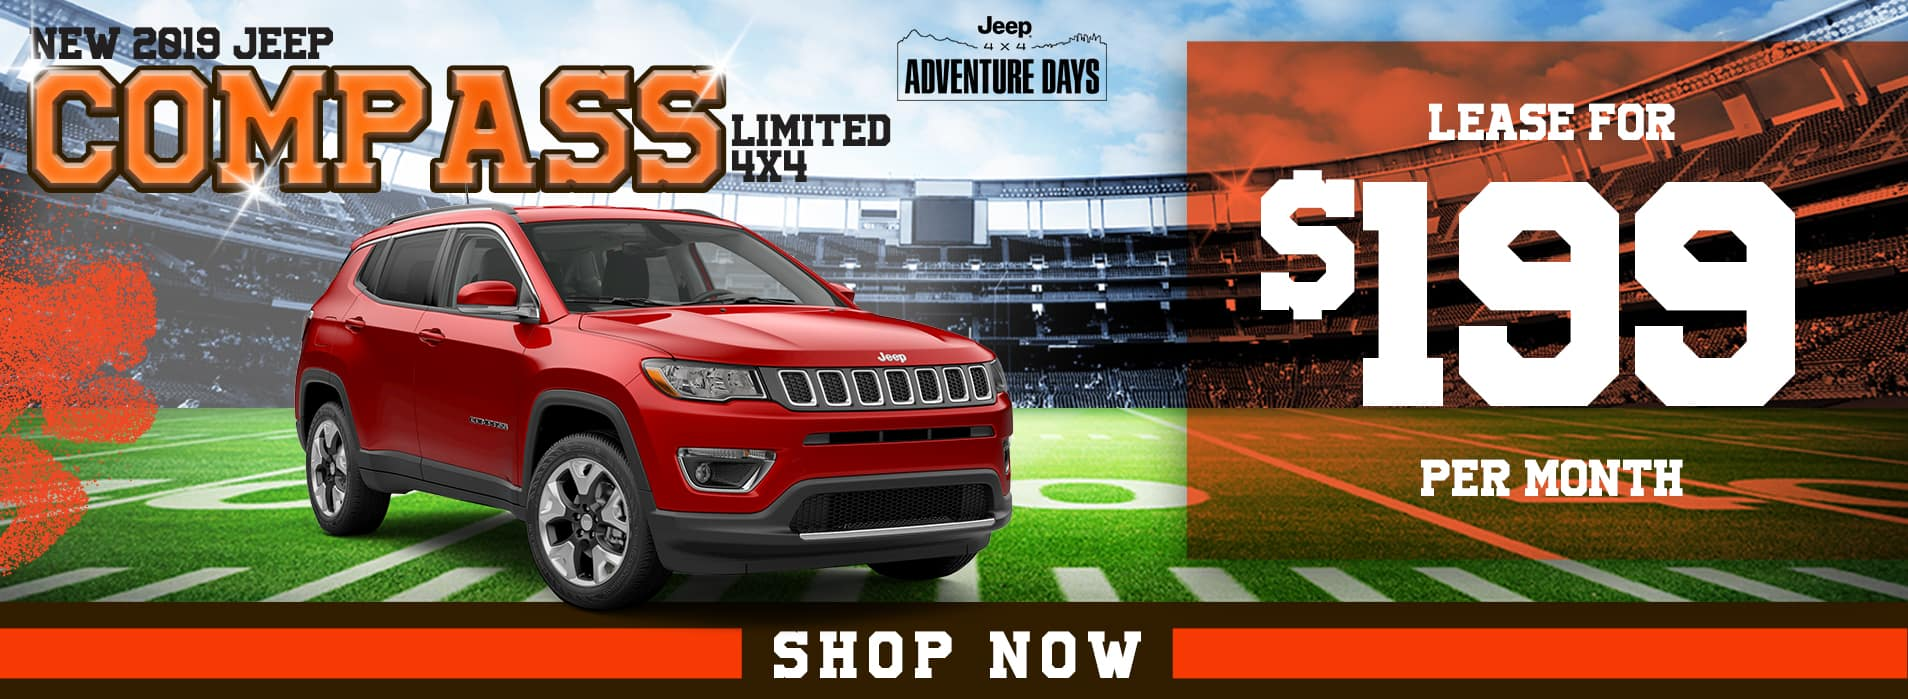 New 2019 Jeep Compass Limited 4x4 Lease for $199 Pe Month